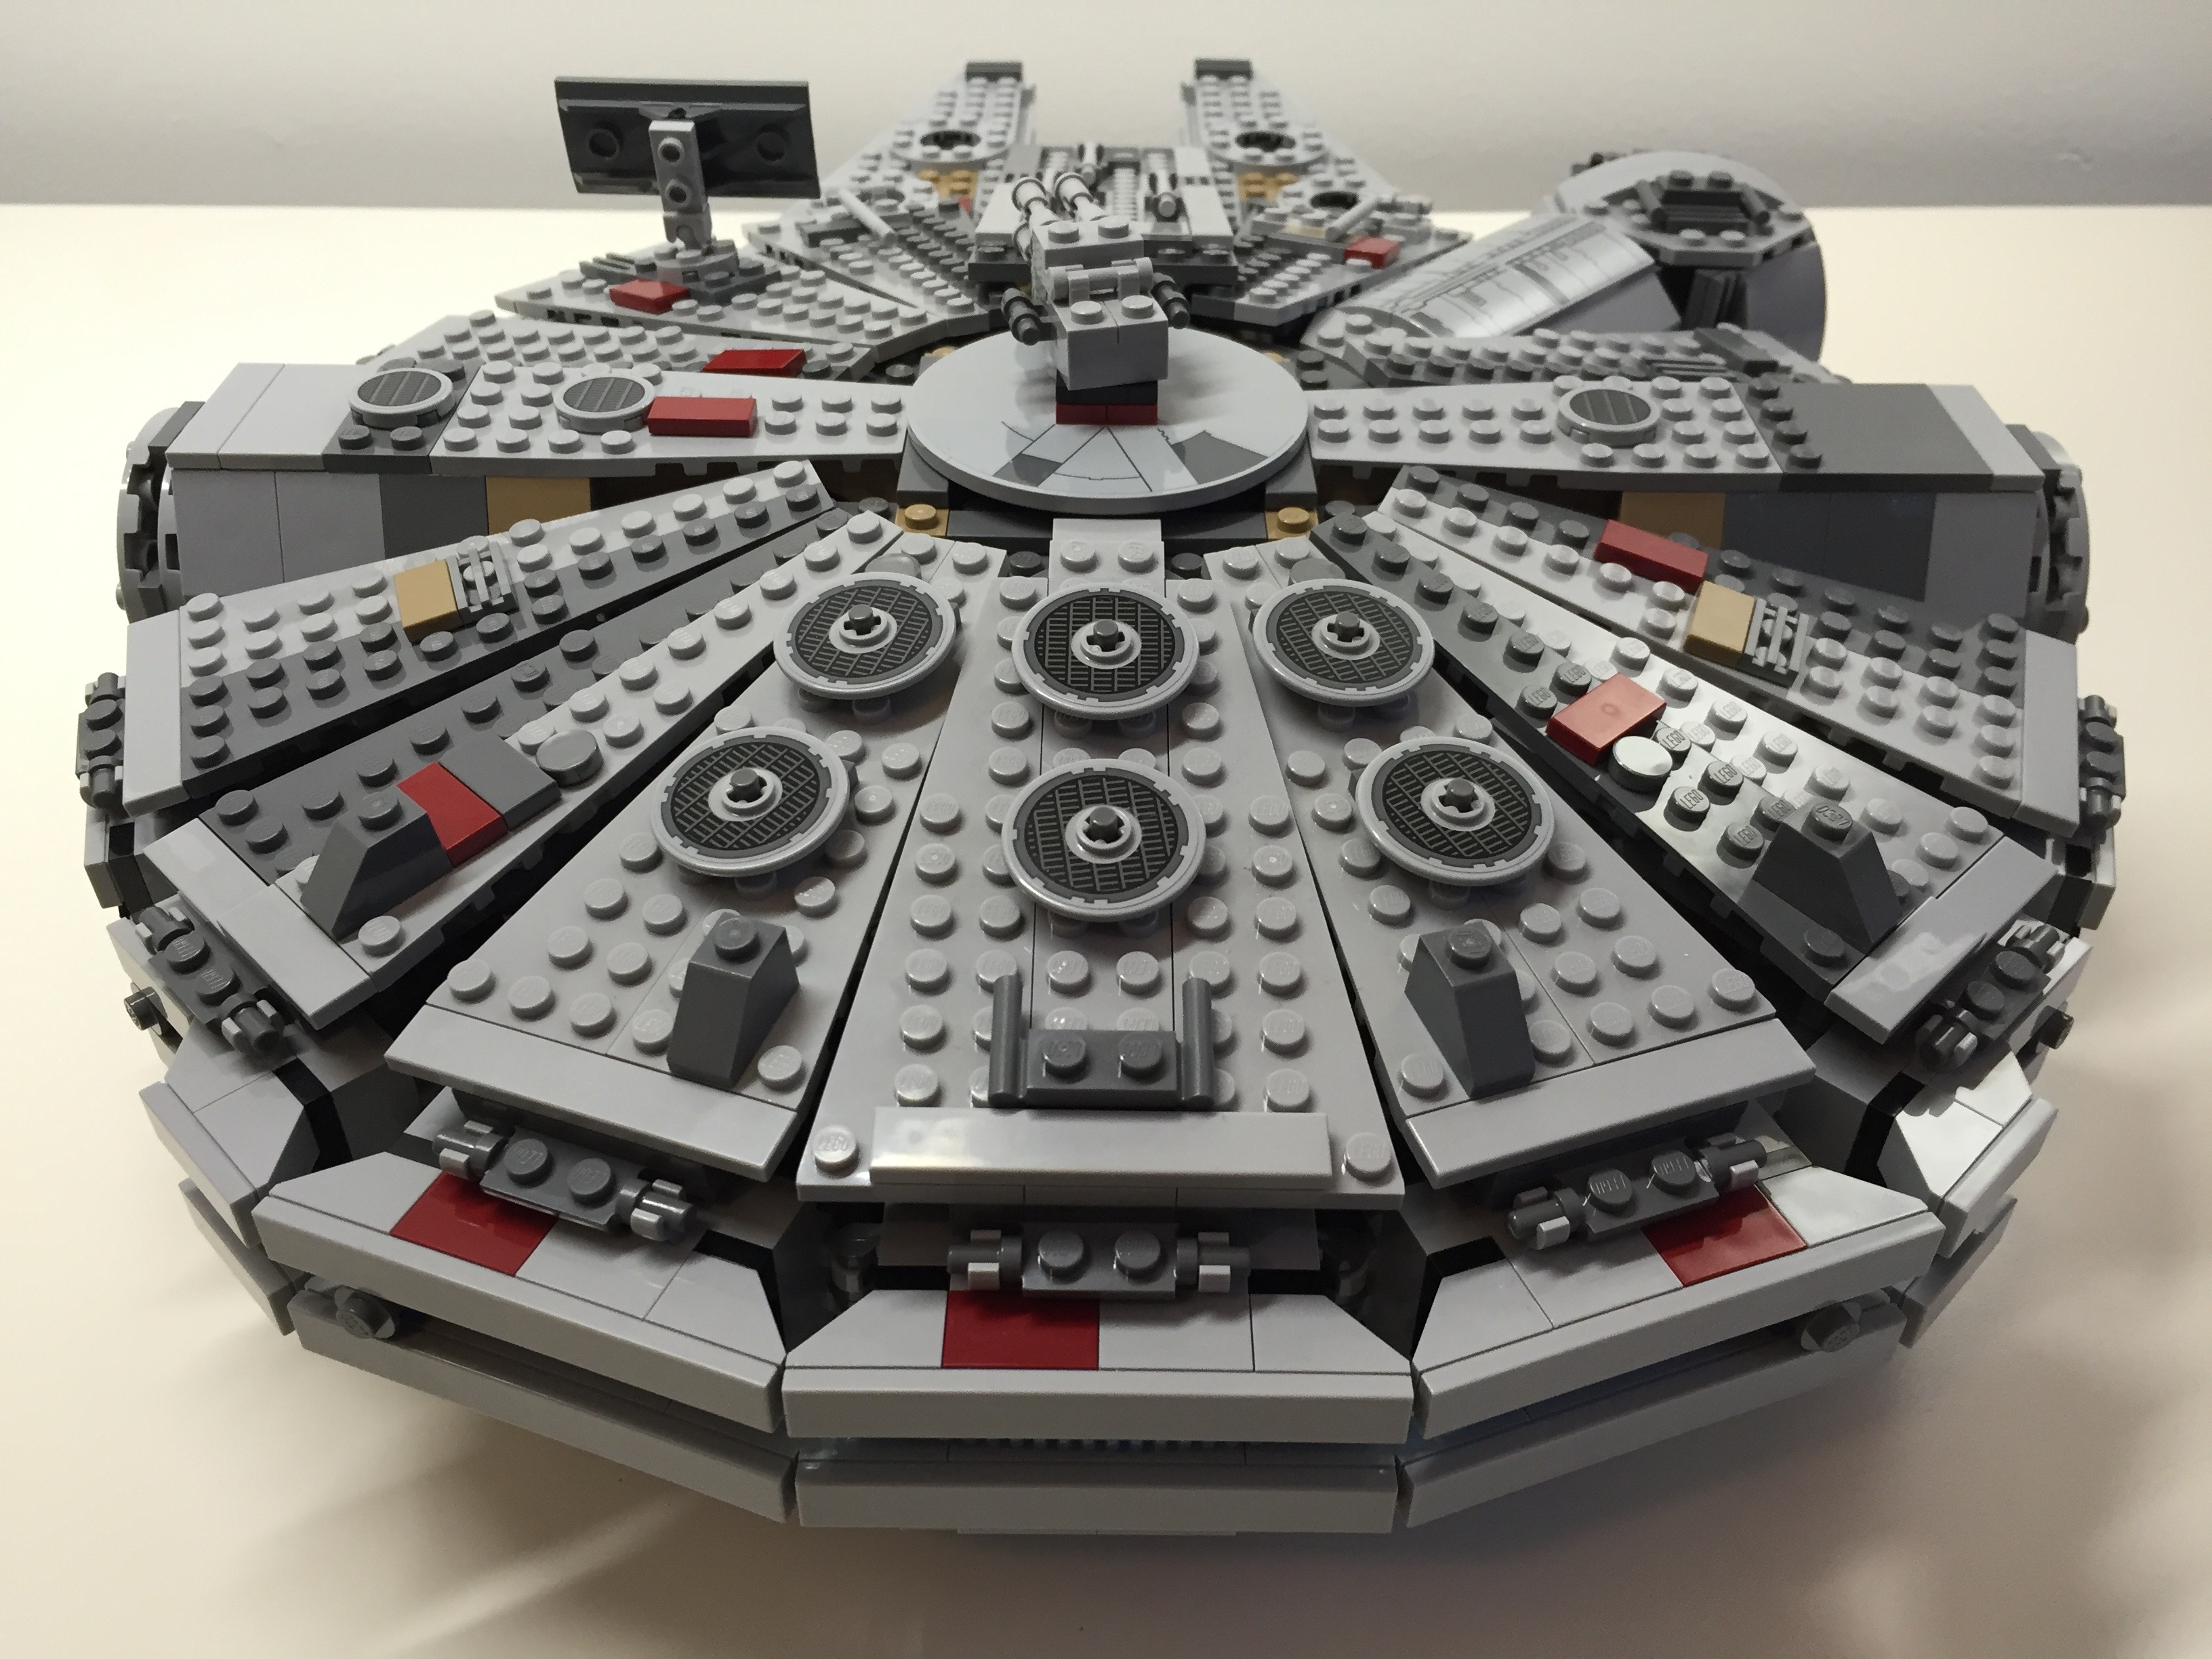 Customized Lego Star Wars Millennium Falcon 75105 From The Force Awakens Dynamic Subspace